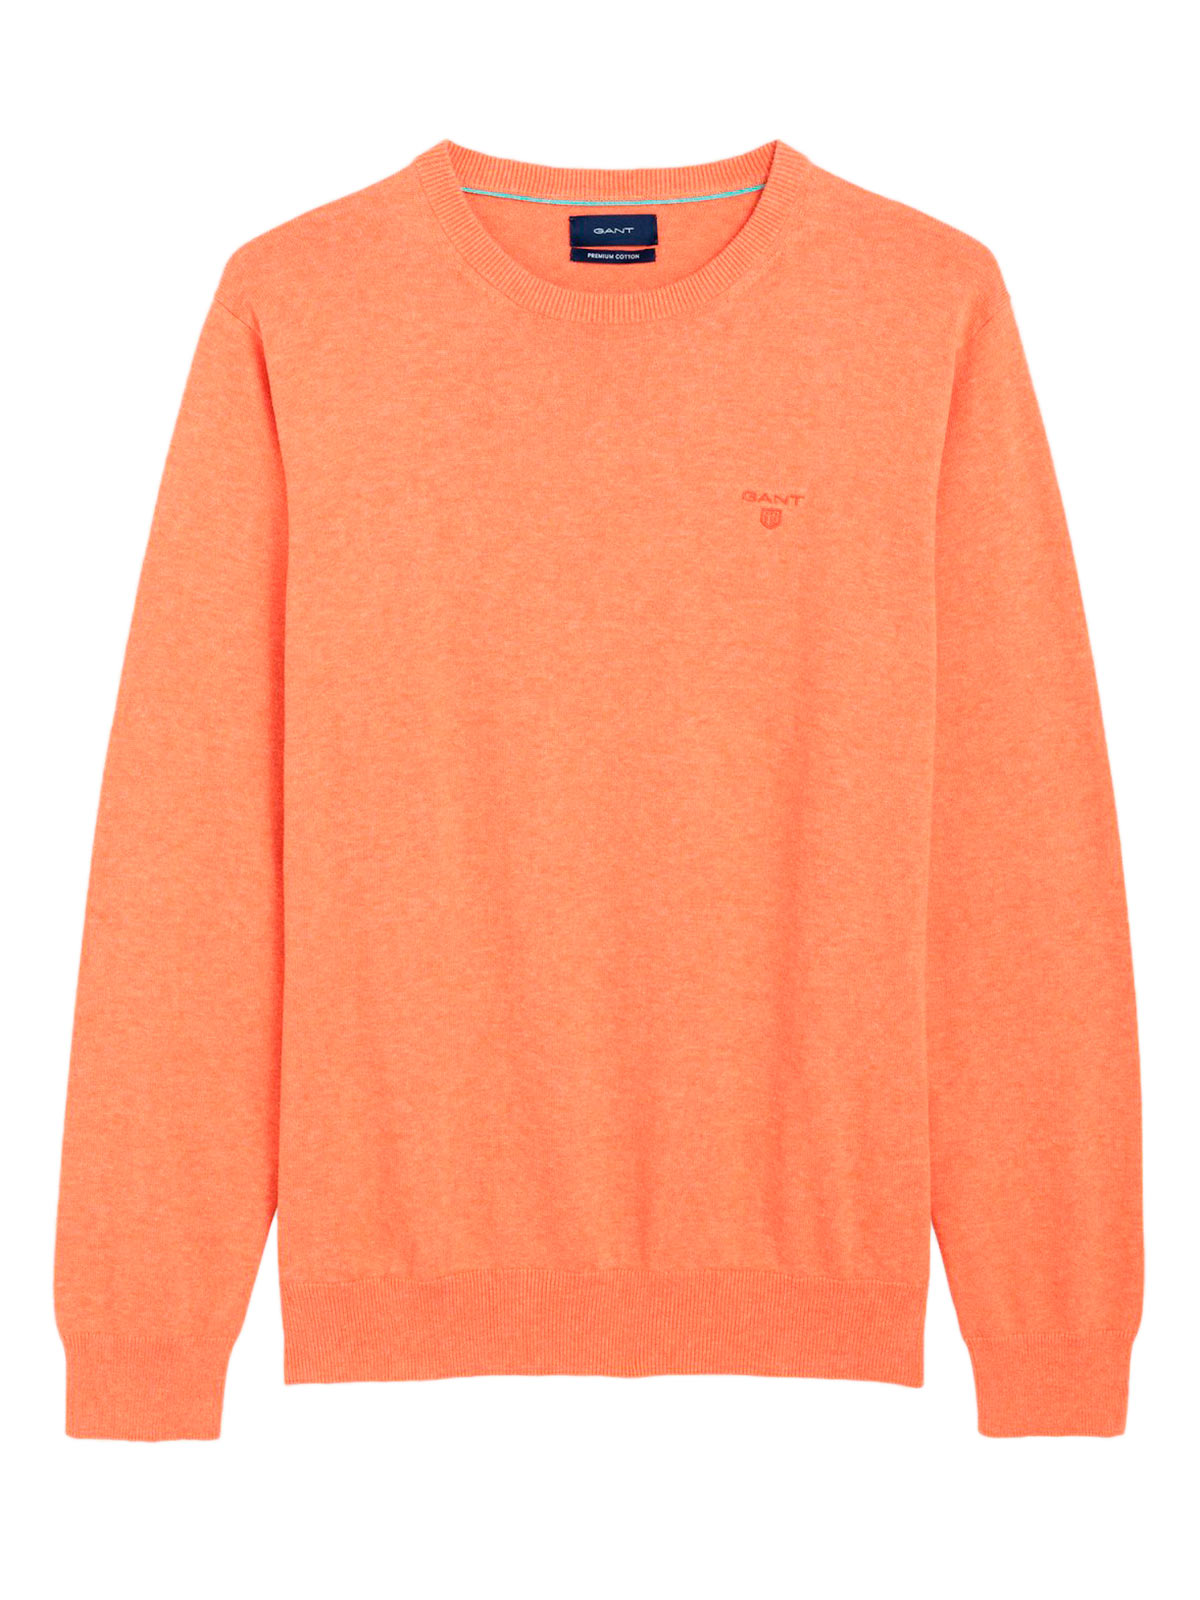 Picture of GANT | JERSEY LIGHT WEIGHT COTTON CREW